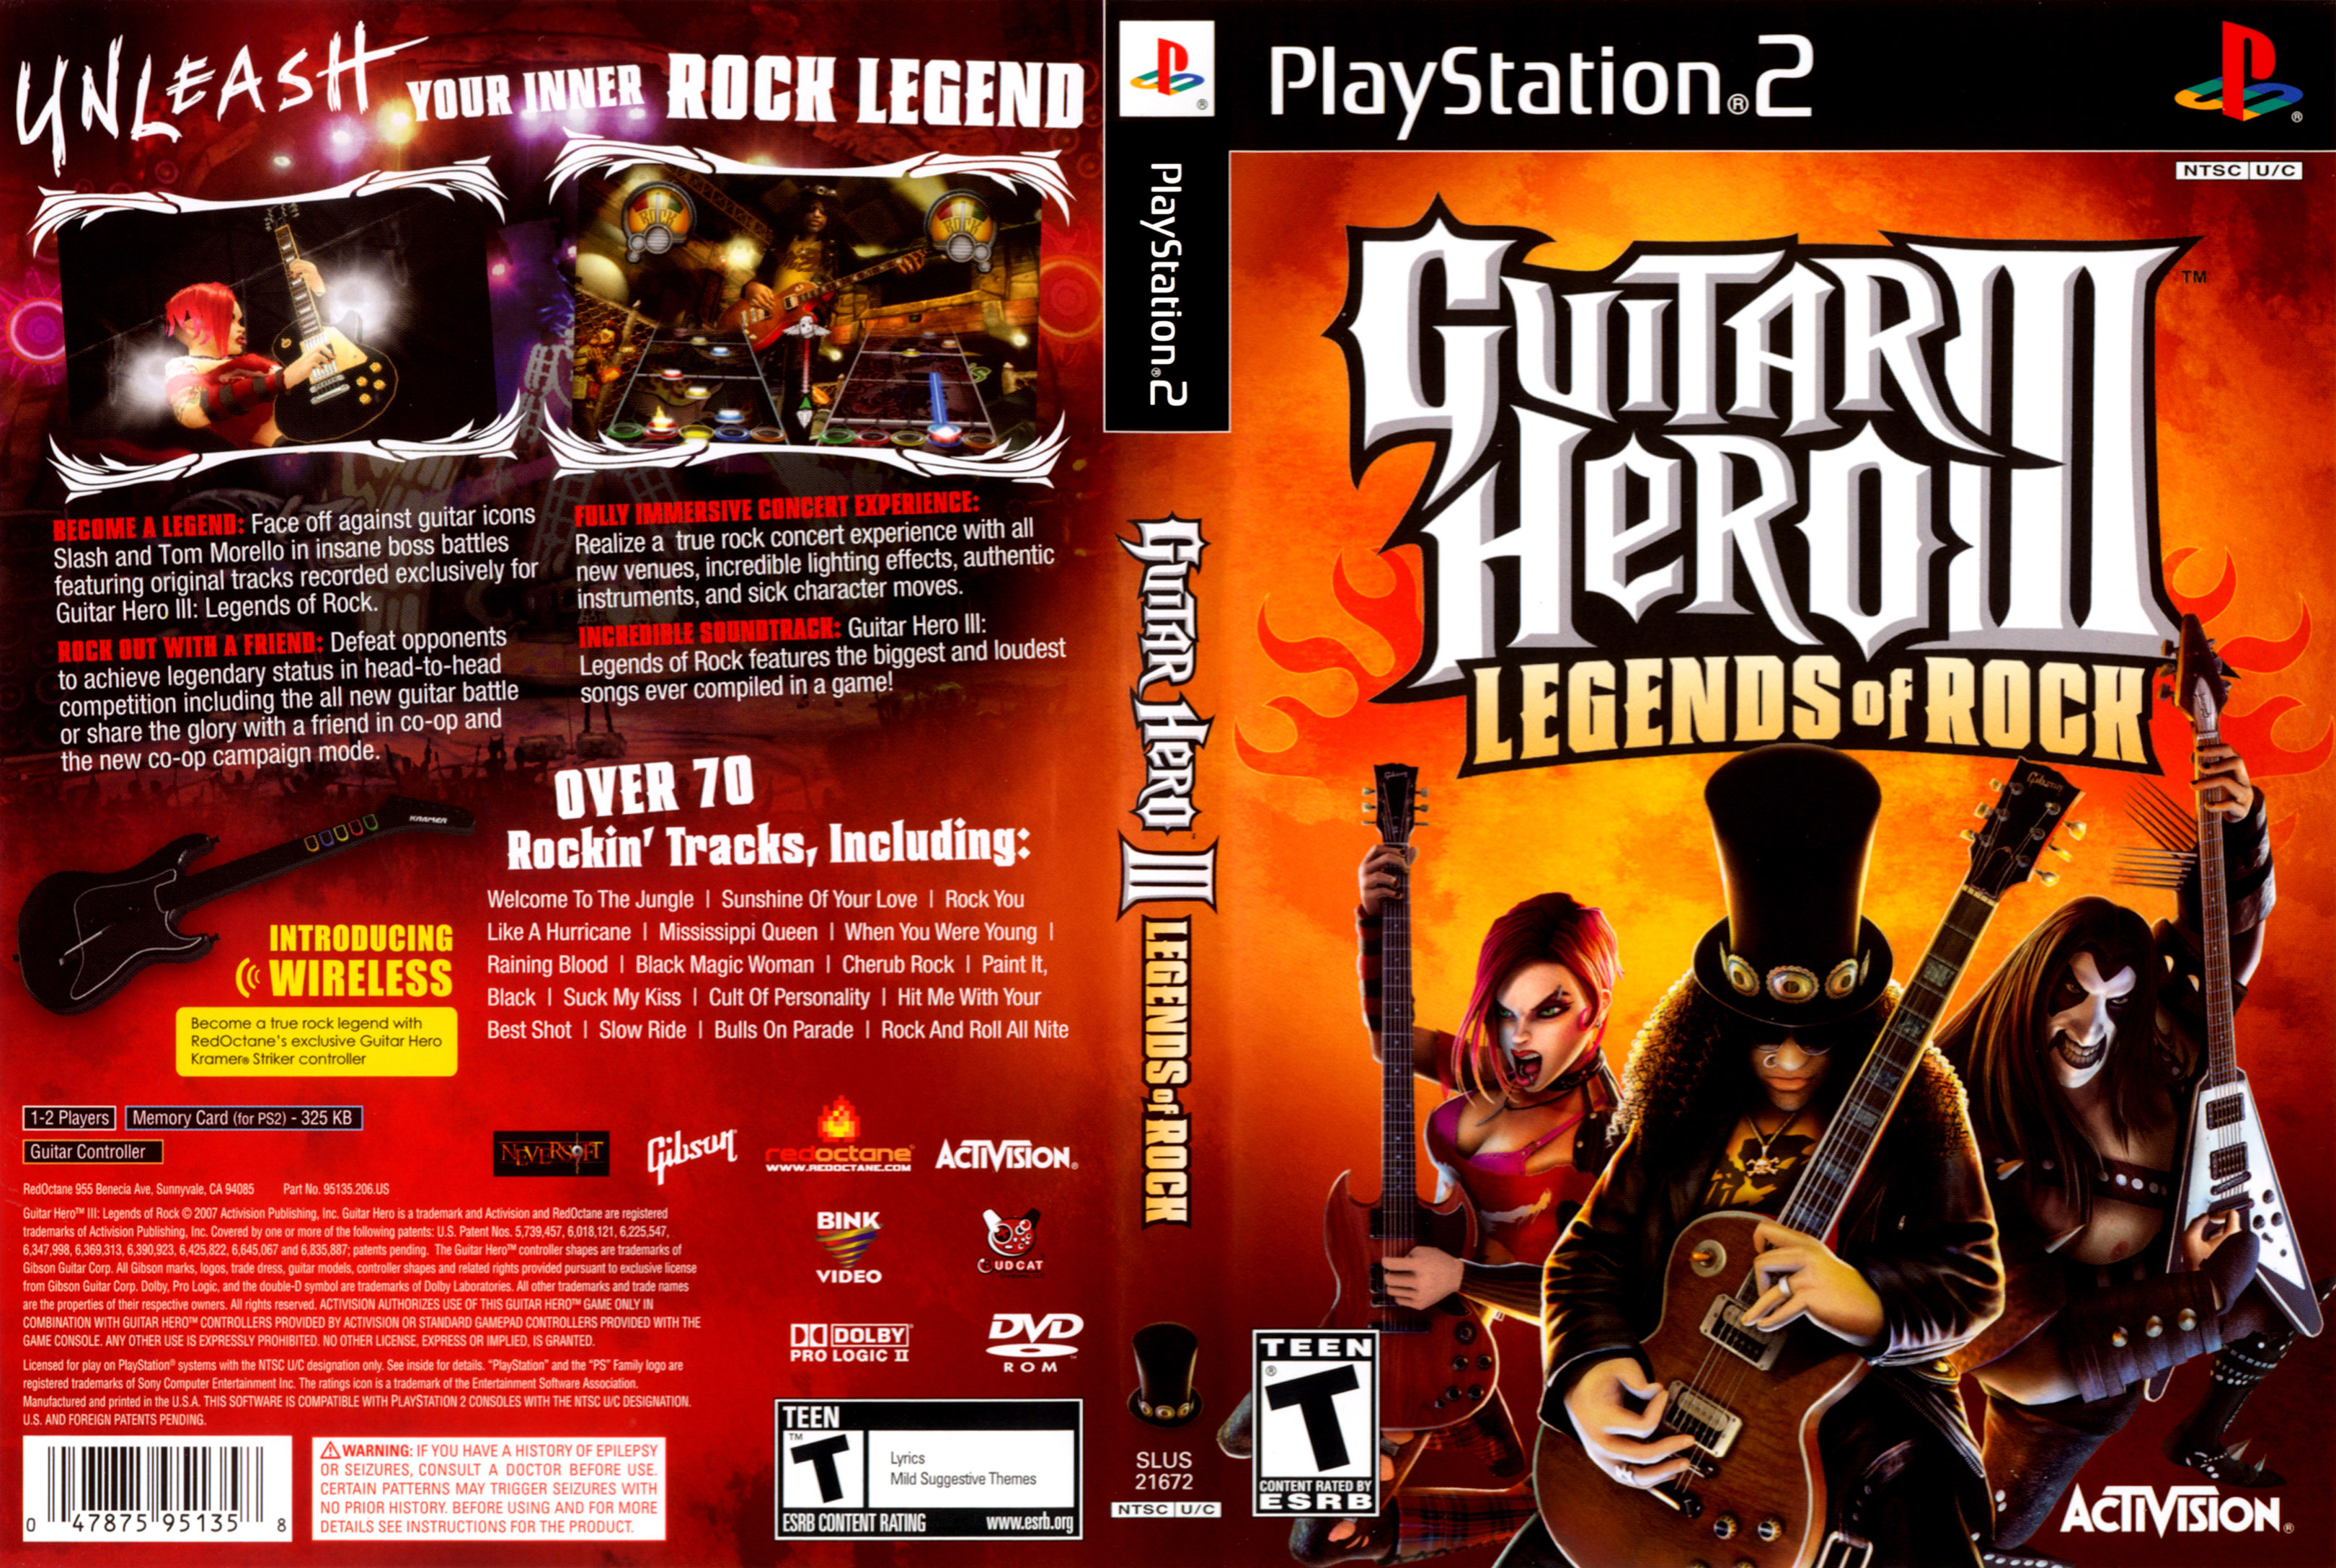 GuitarHeroIIILegendsofRock